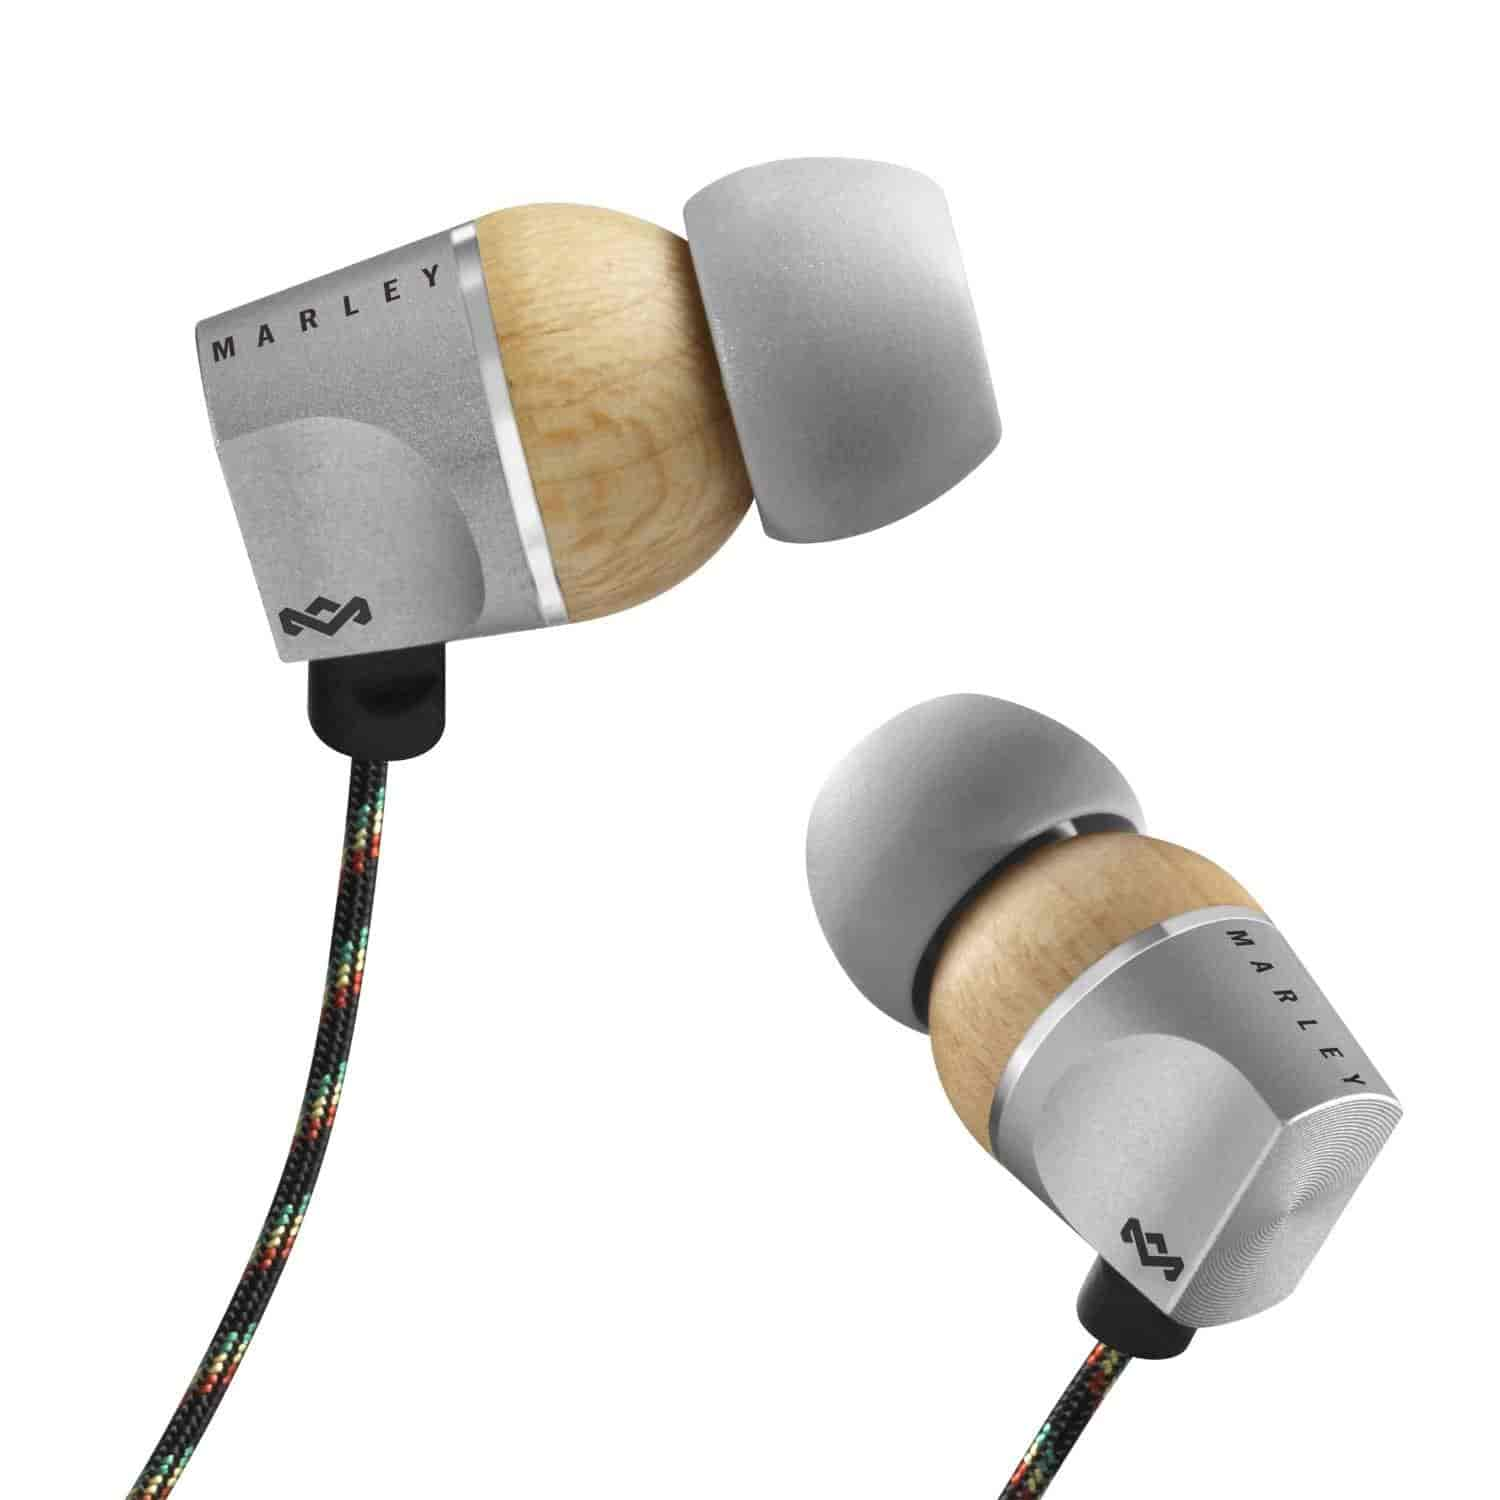 House-of-Marley-EM-FE023-SM-Zion-Mist-In-Ear-Headphones-with-Apple-Three-Button-Controller